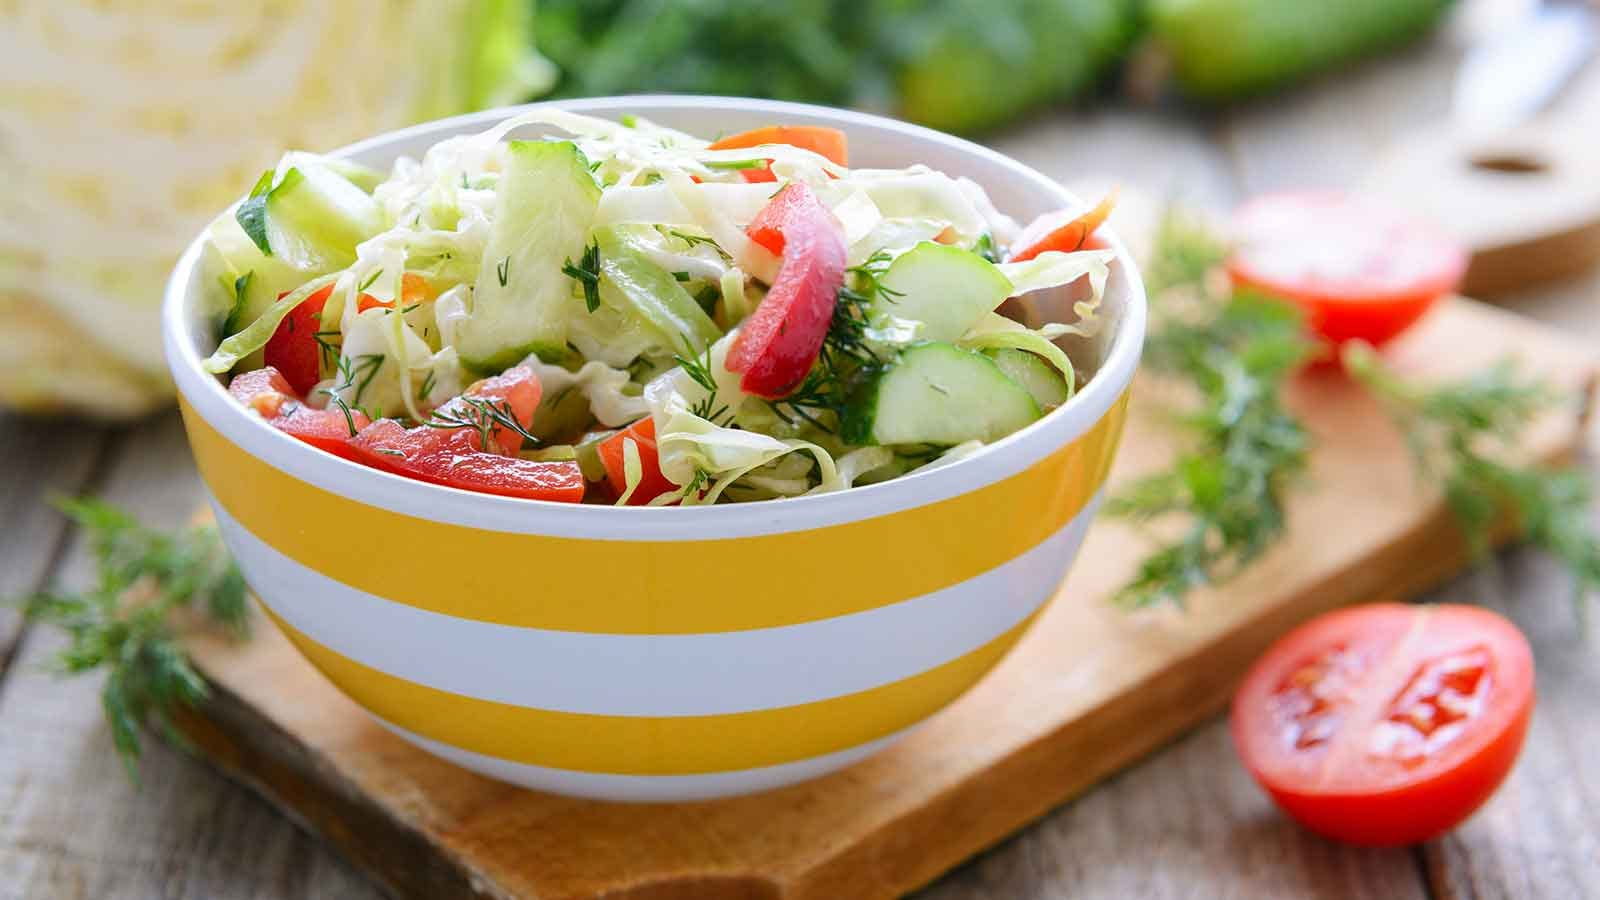 Fresh salad in a white and yellow striped bowl sitting on a cutting board.